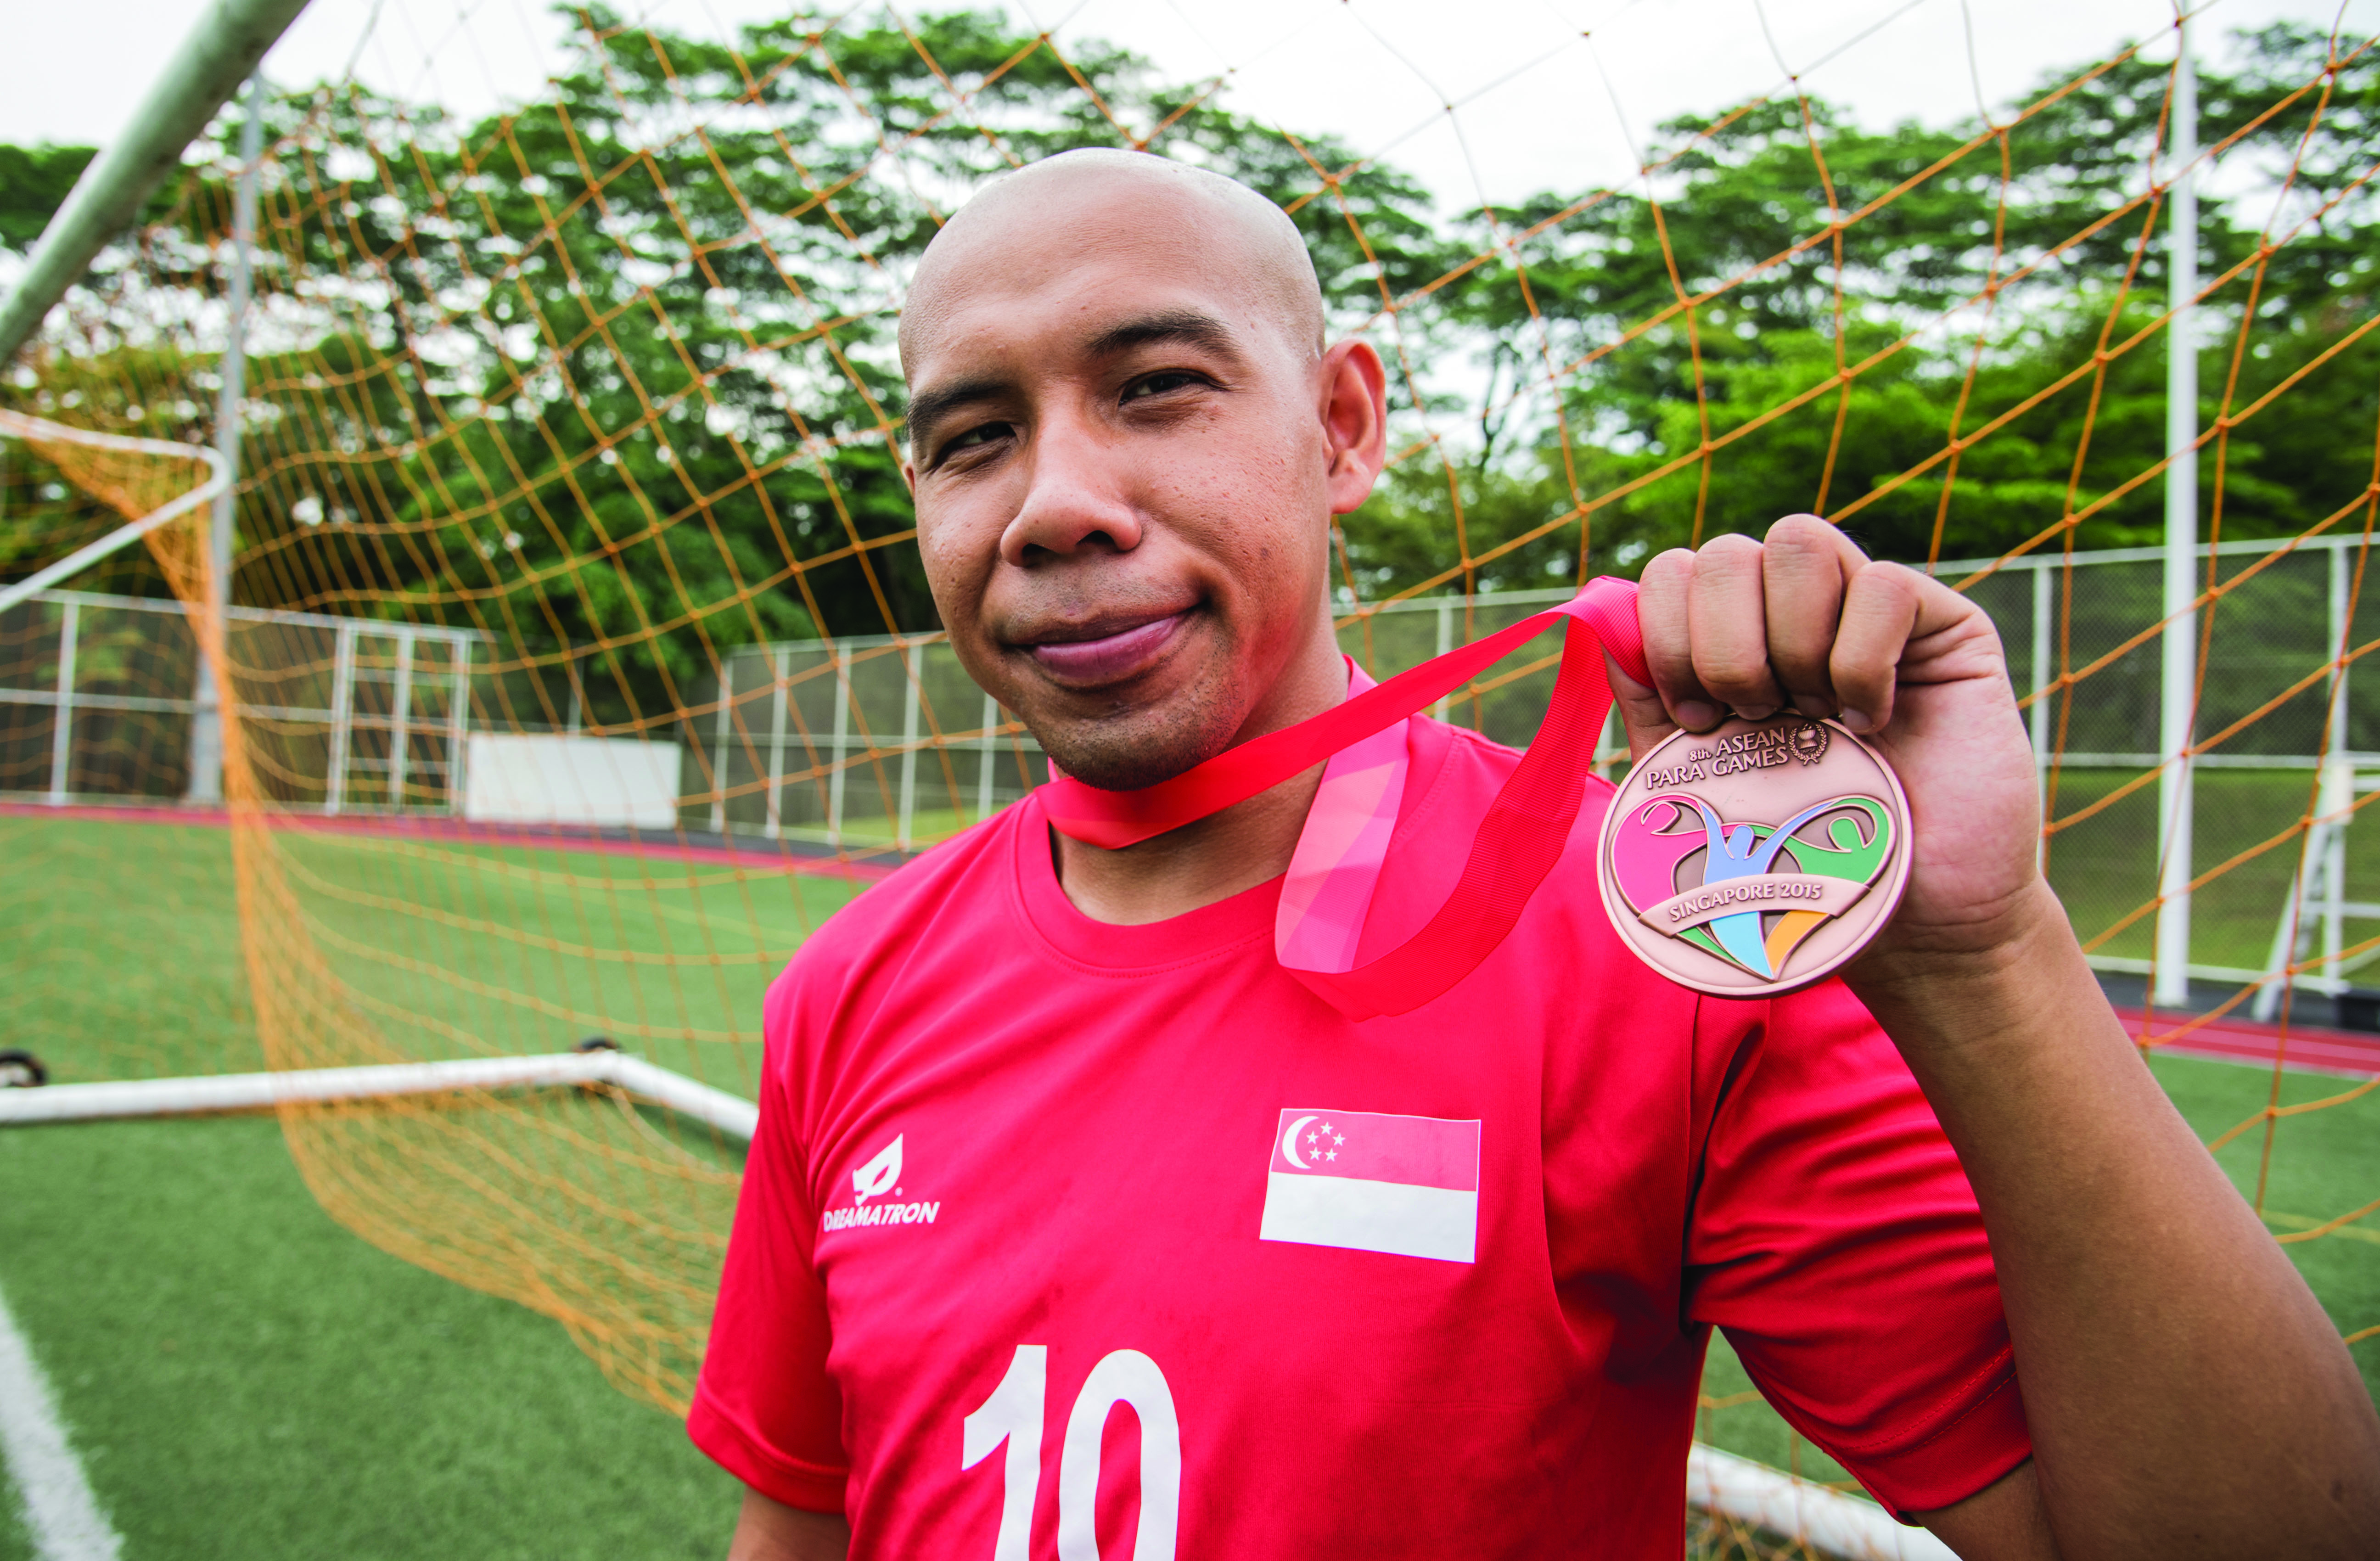 INTO THE HISTORY BOOKS: Being the first Singaporean to score a hat-trick at the new National Stadium, Khairul Anwar, 29, has overcome disability to become a cult hero in local football. PHOTO: Ken Lu